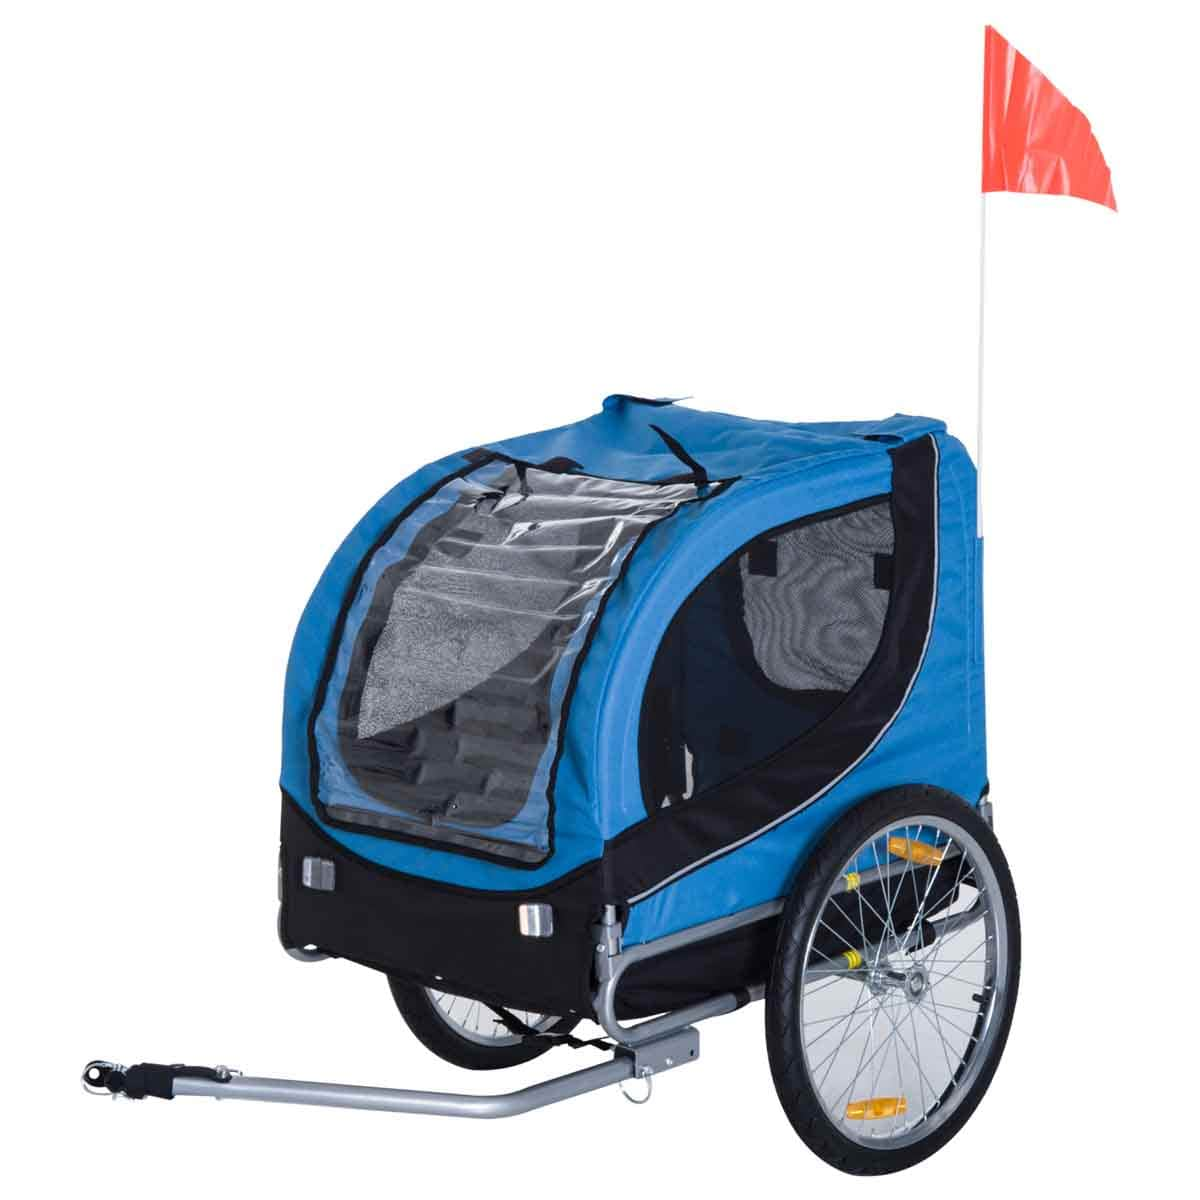 PawHut Pet Bike Fold Stroller W/ Double Wheel and Removable Cover - Black & Blue